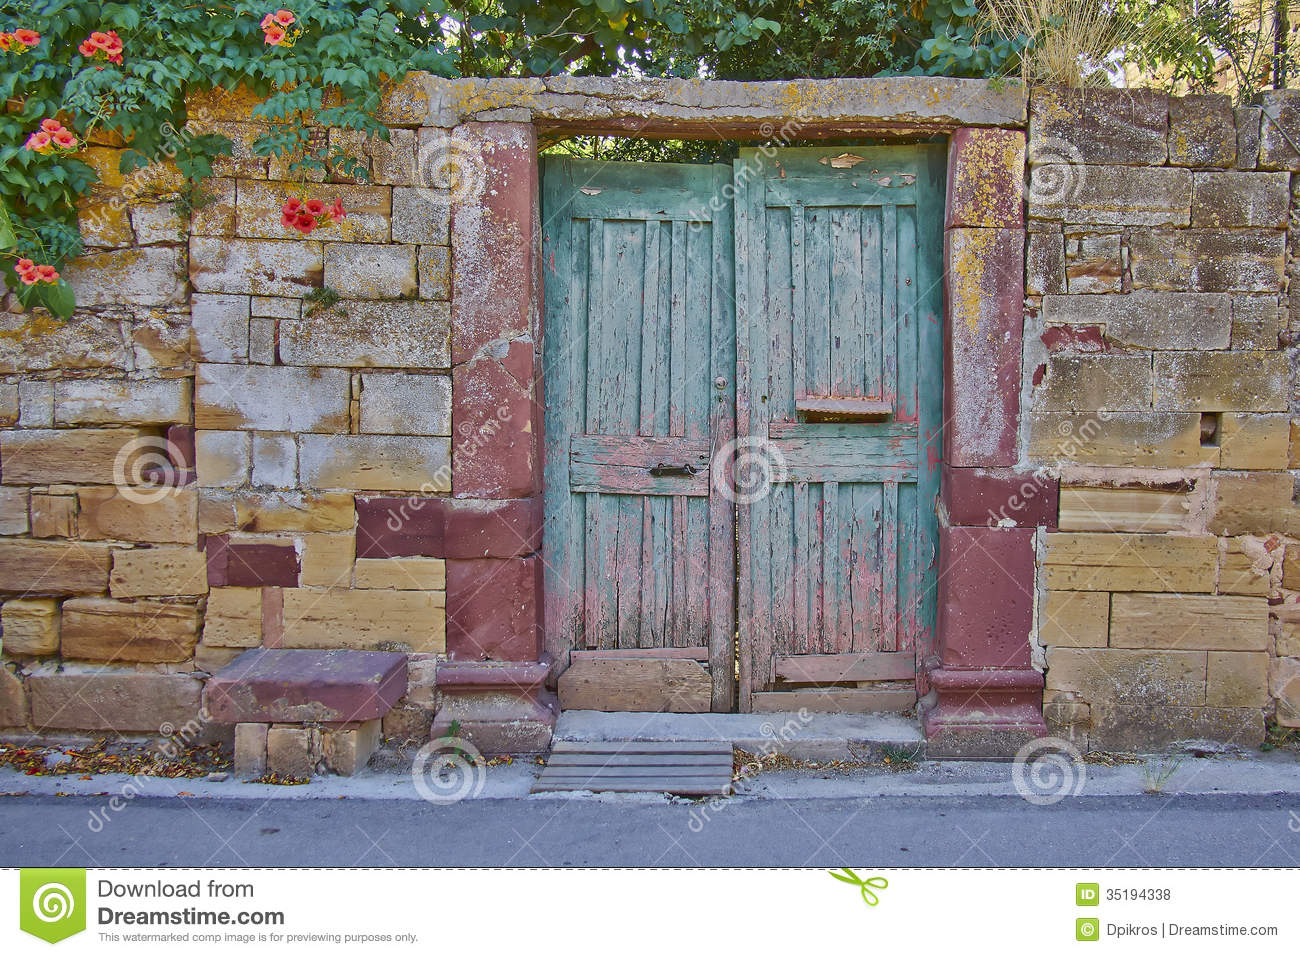 Royalty Free Stock Photos Vintage House Entrance Chios Island Greece Image35194338 on vintage style house plans